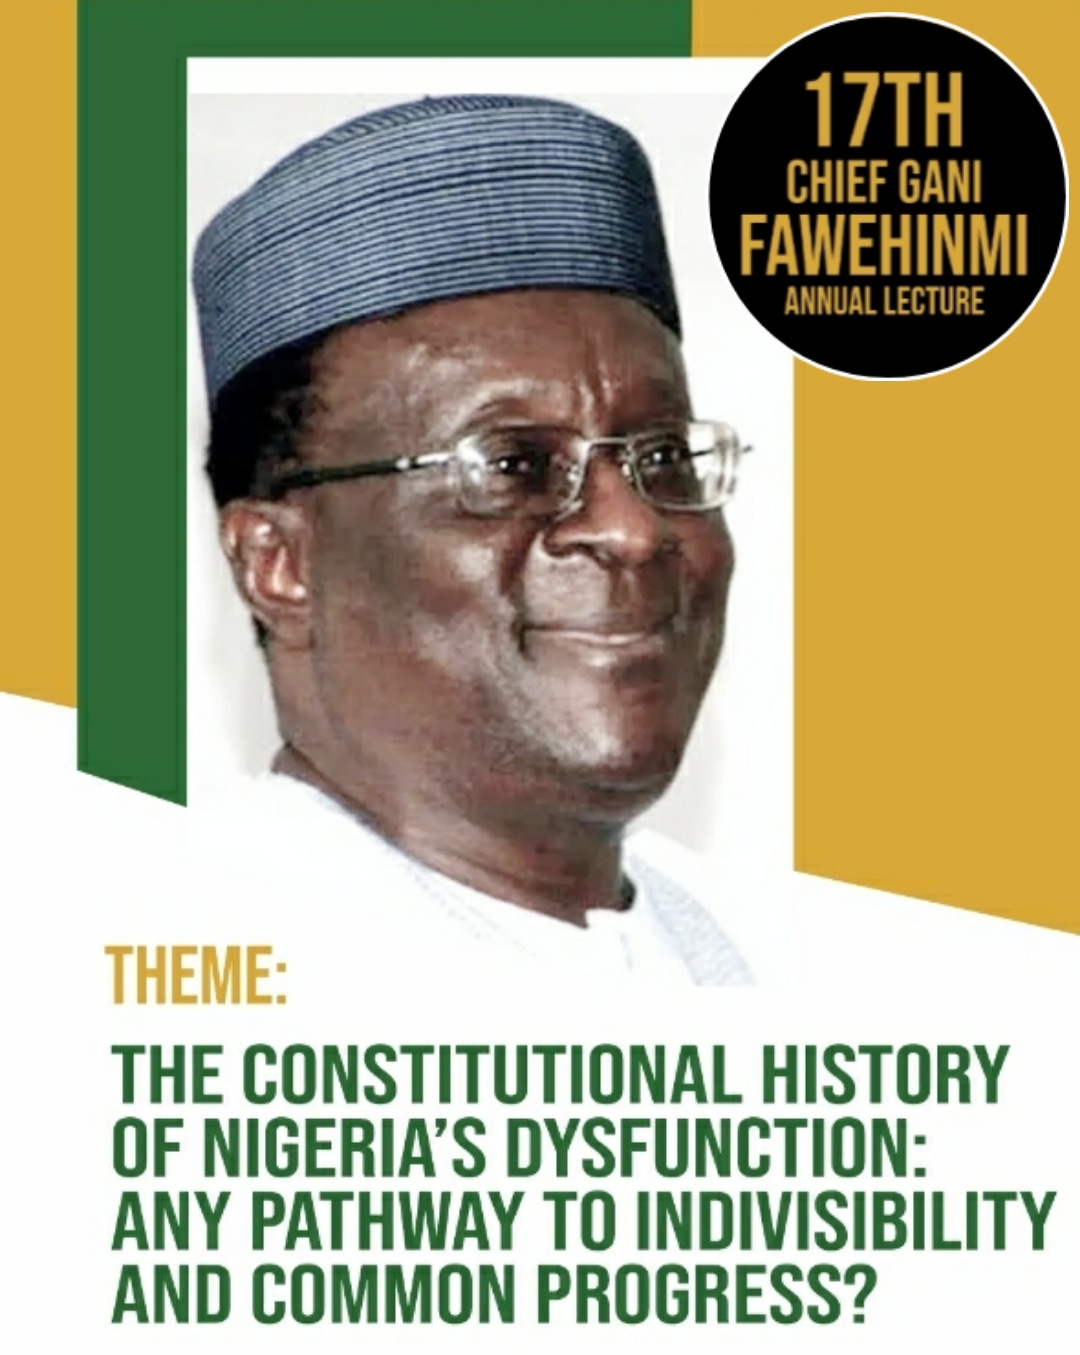 NBA IKEJA HOLDS 17TH GANI FAWEHINMI LECTURE ON FRIDAY, 15TH JANUARY, 2021